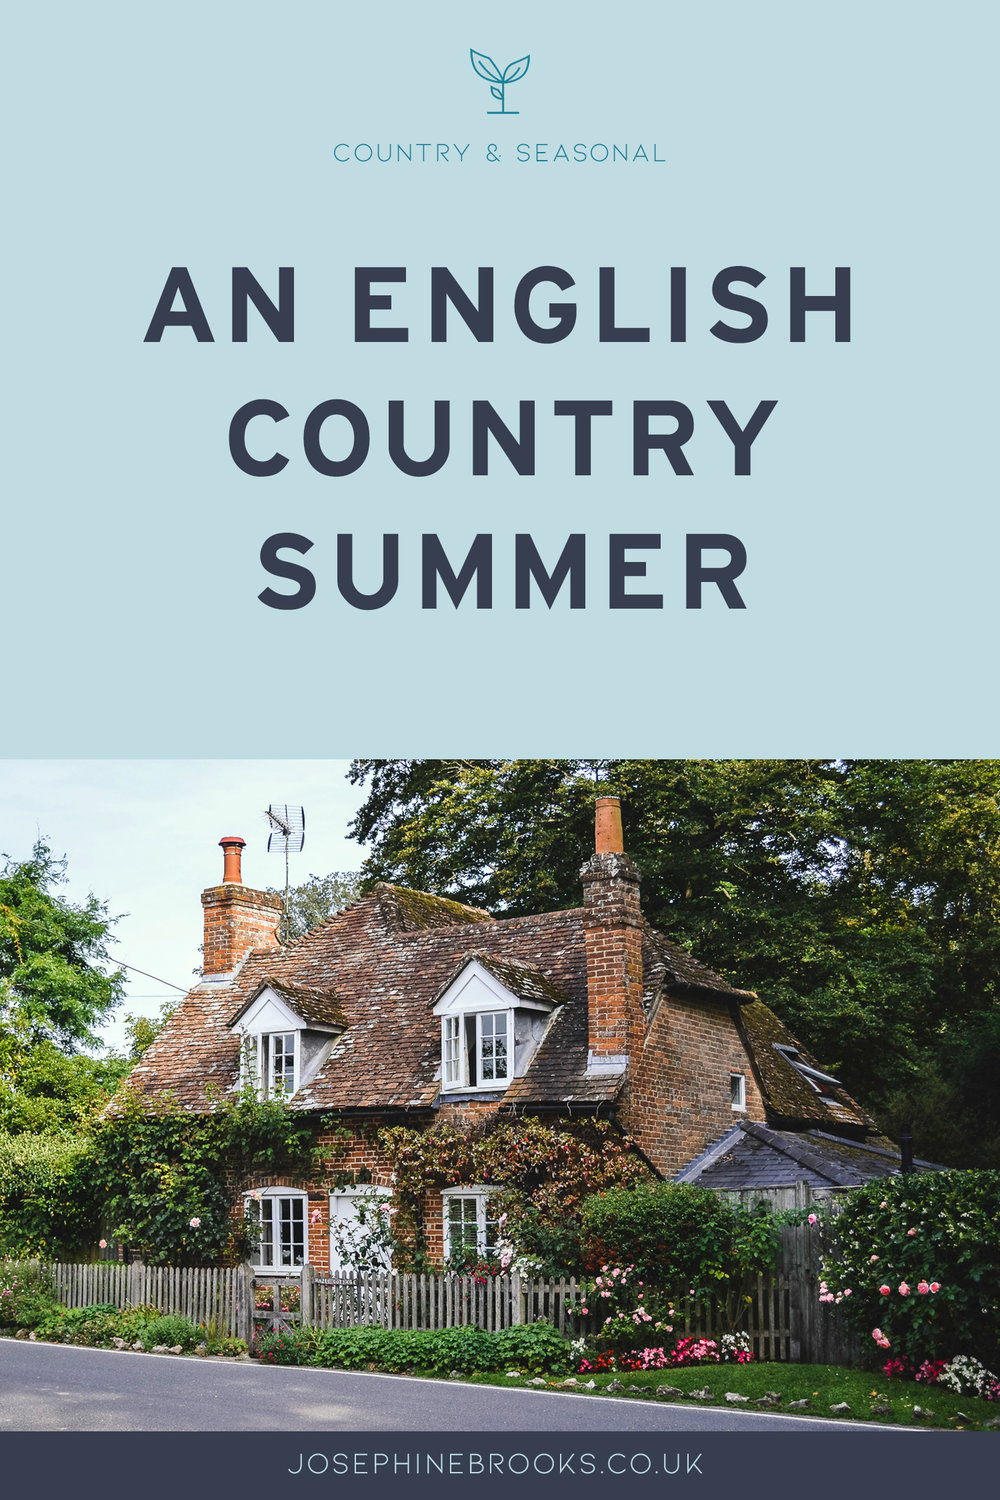 An English Country Summer in Hampshire UK, Cute country cottage. English summer time in the countryside.